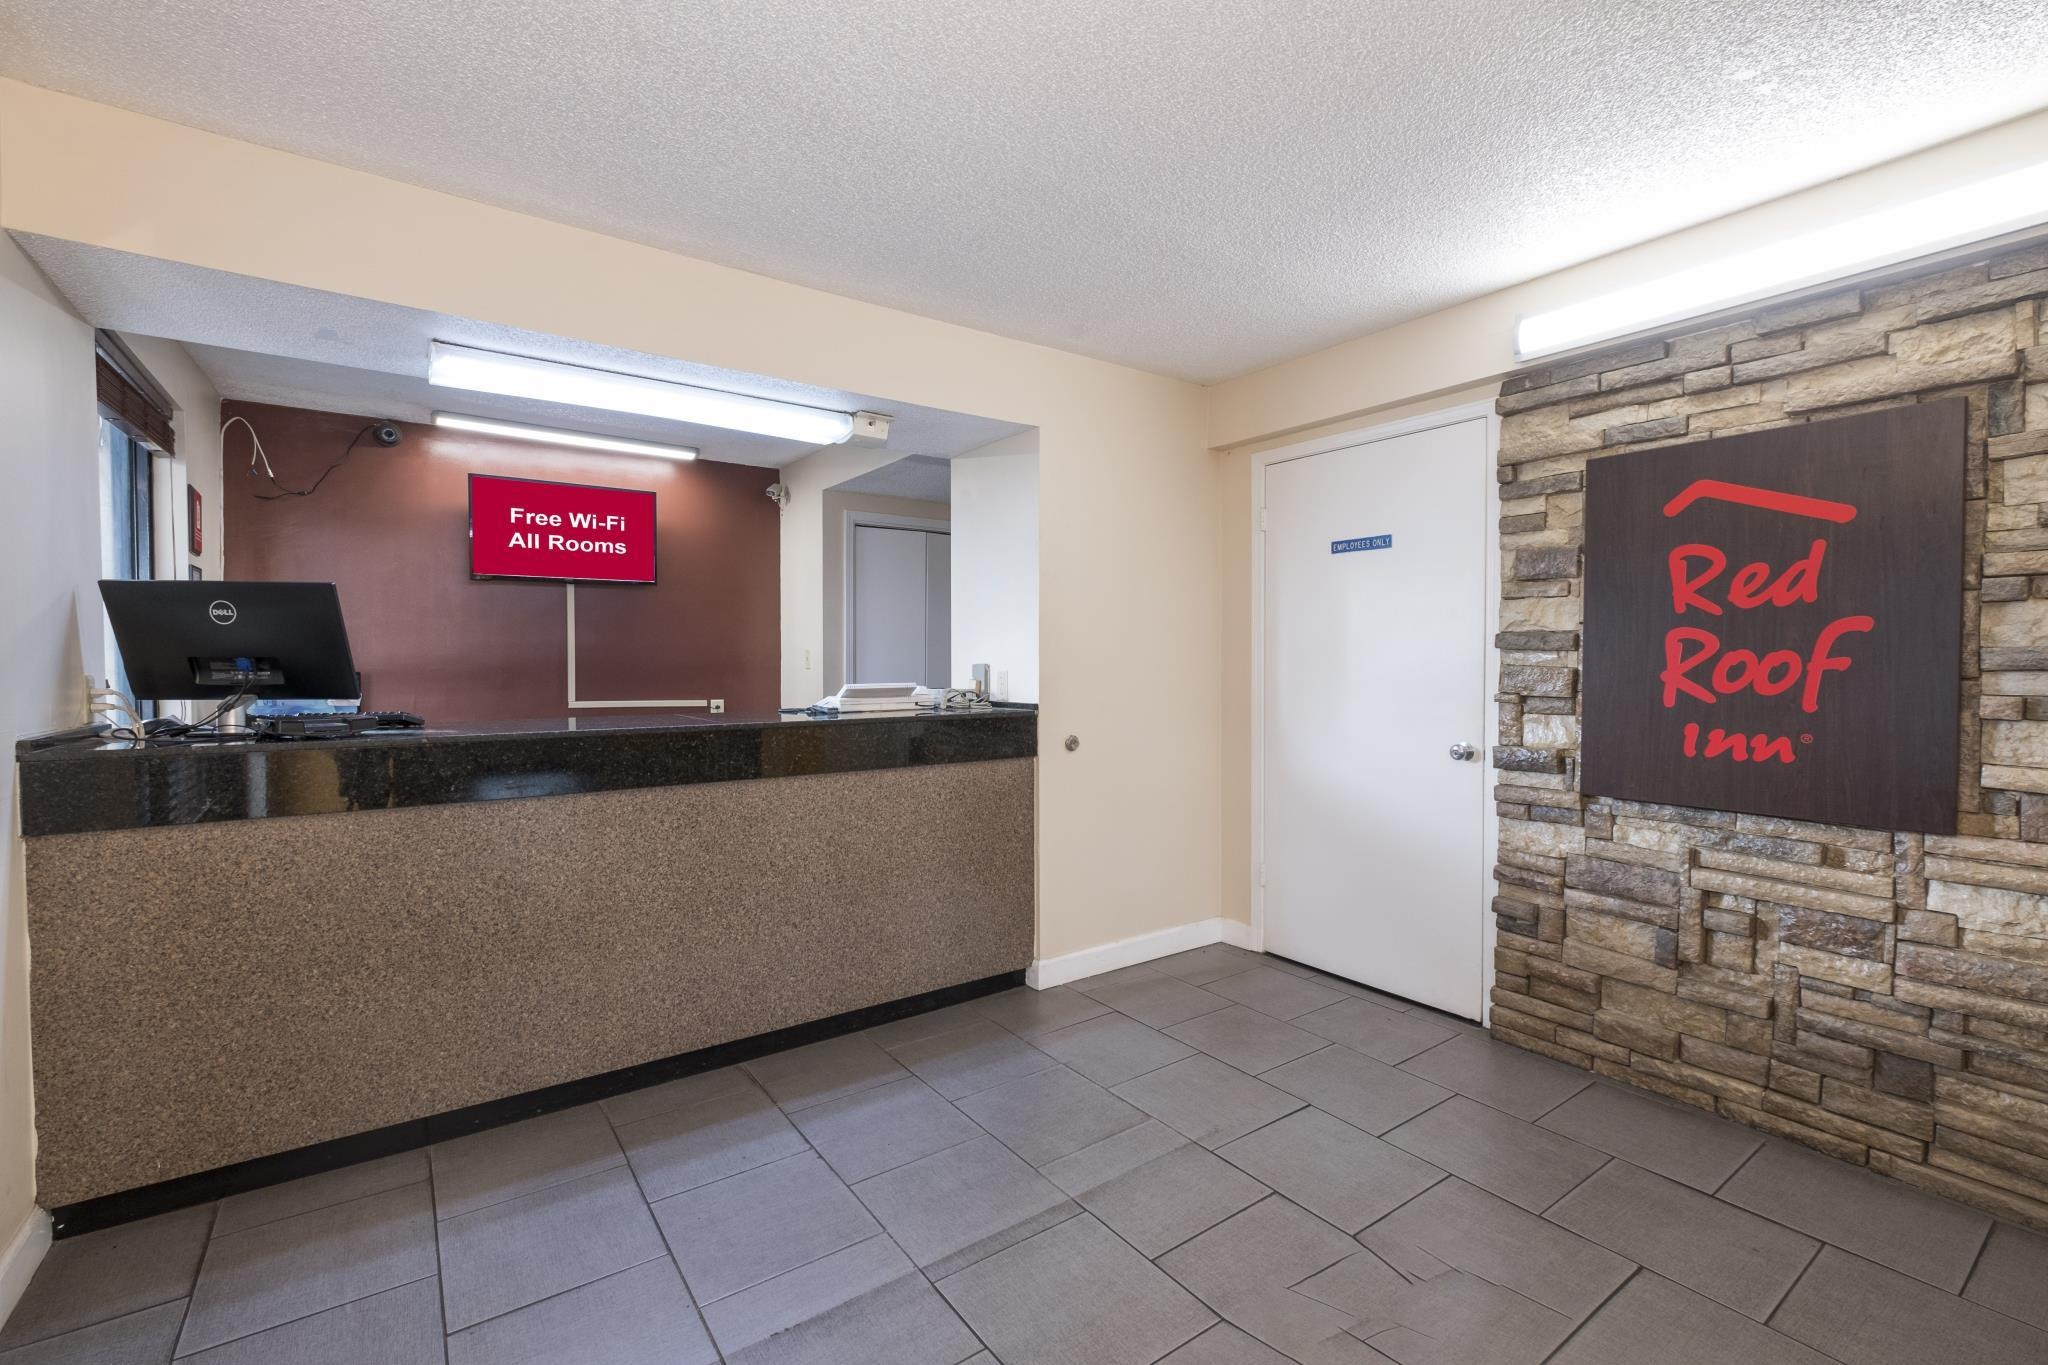 Red Roof Inn Mobile   Midtown. See More Photos. Lobby